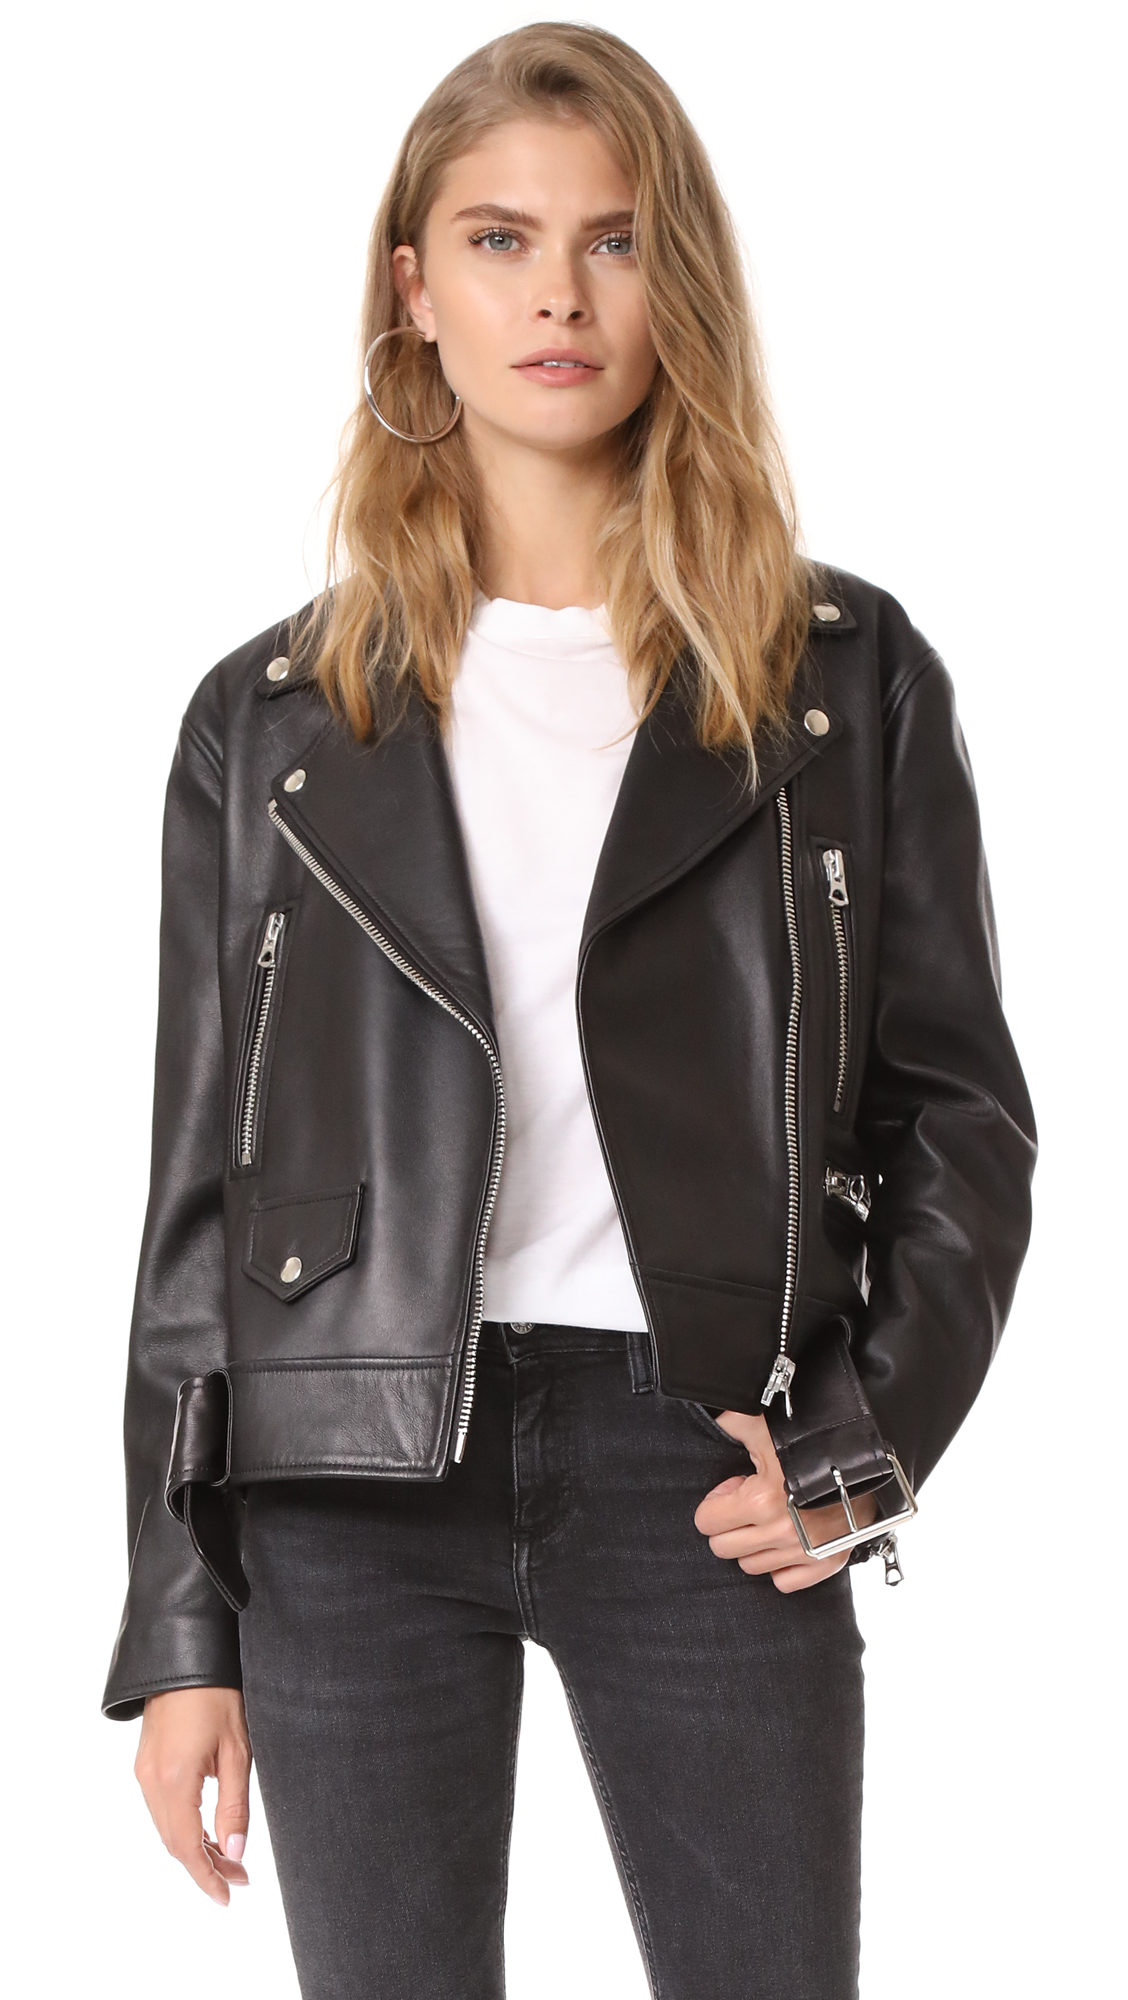 Acne Studios Merlyn Leather Jacket - Black